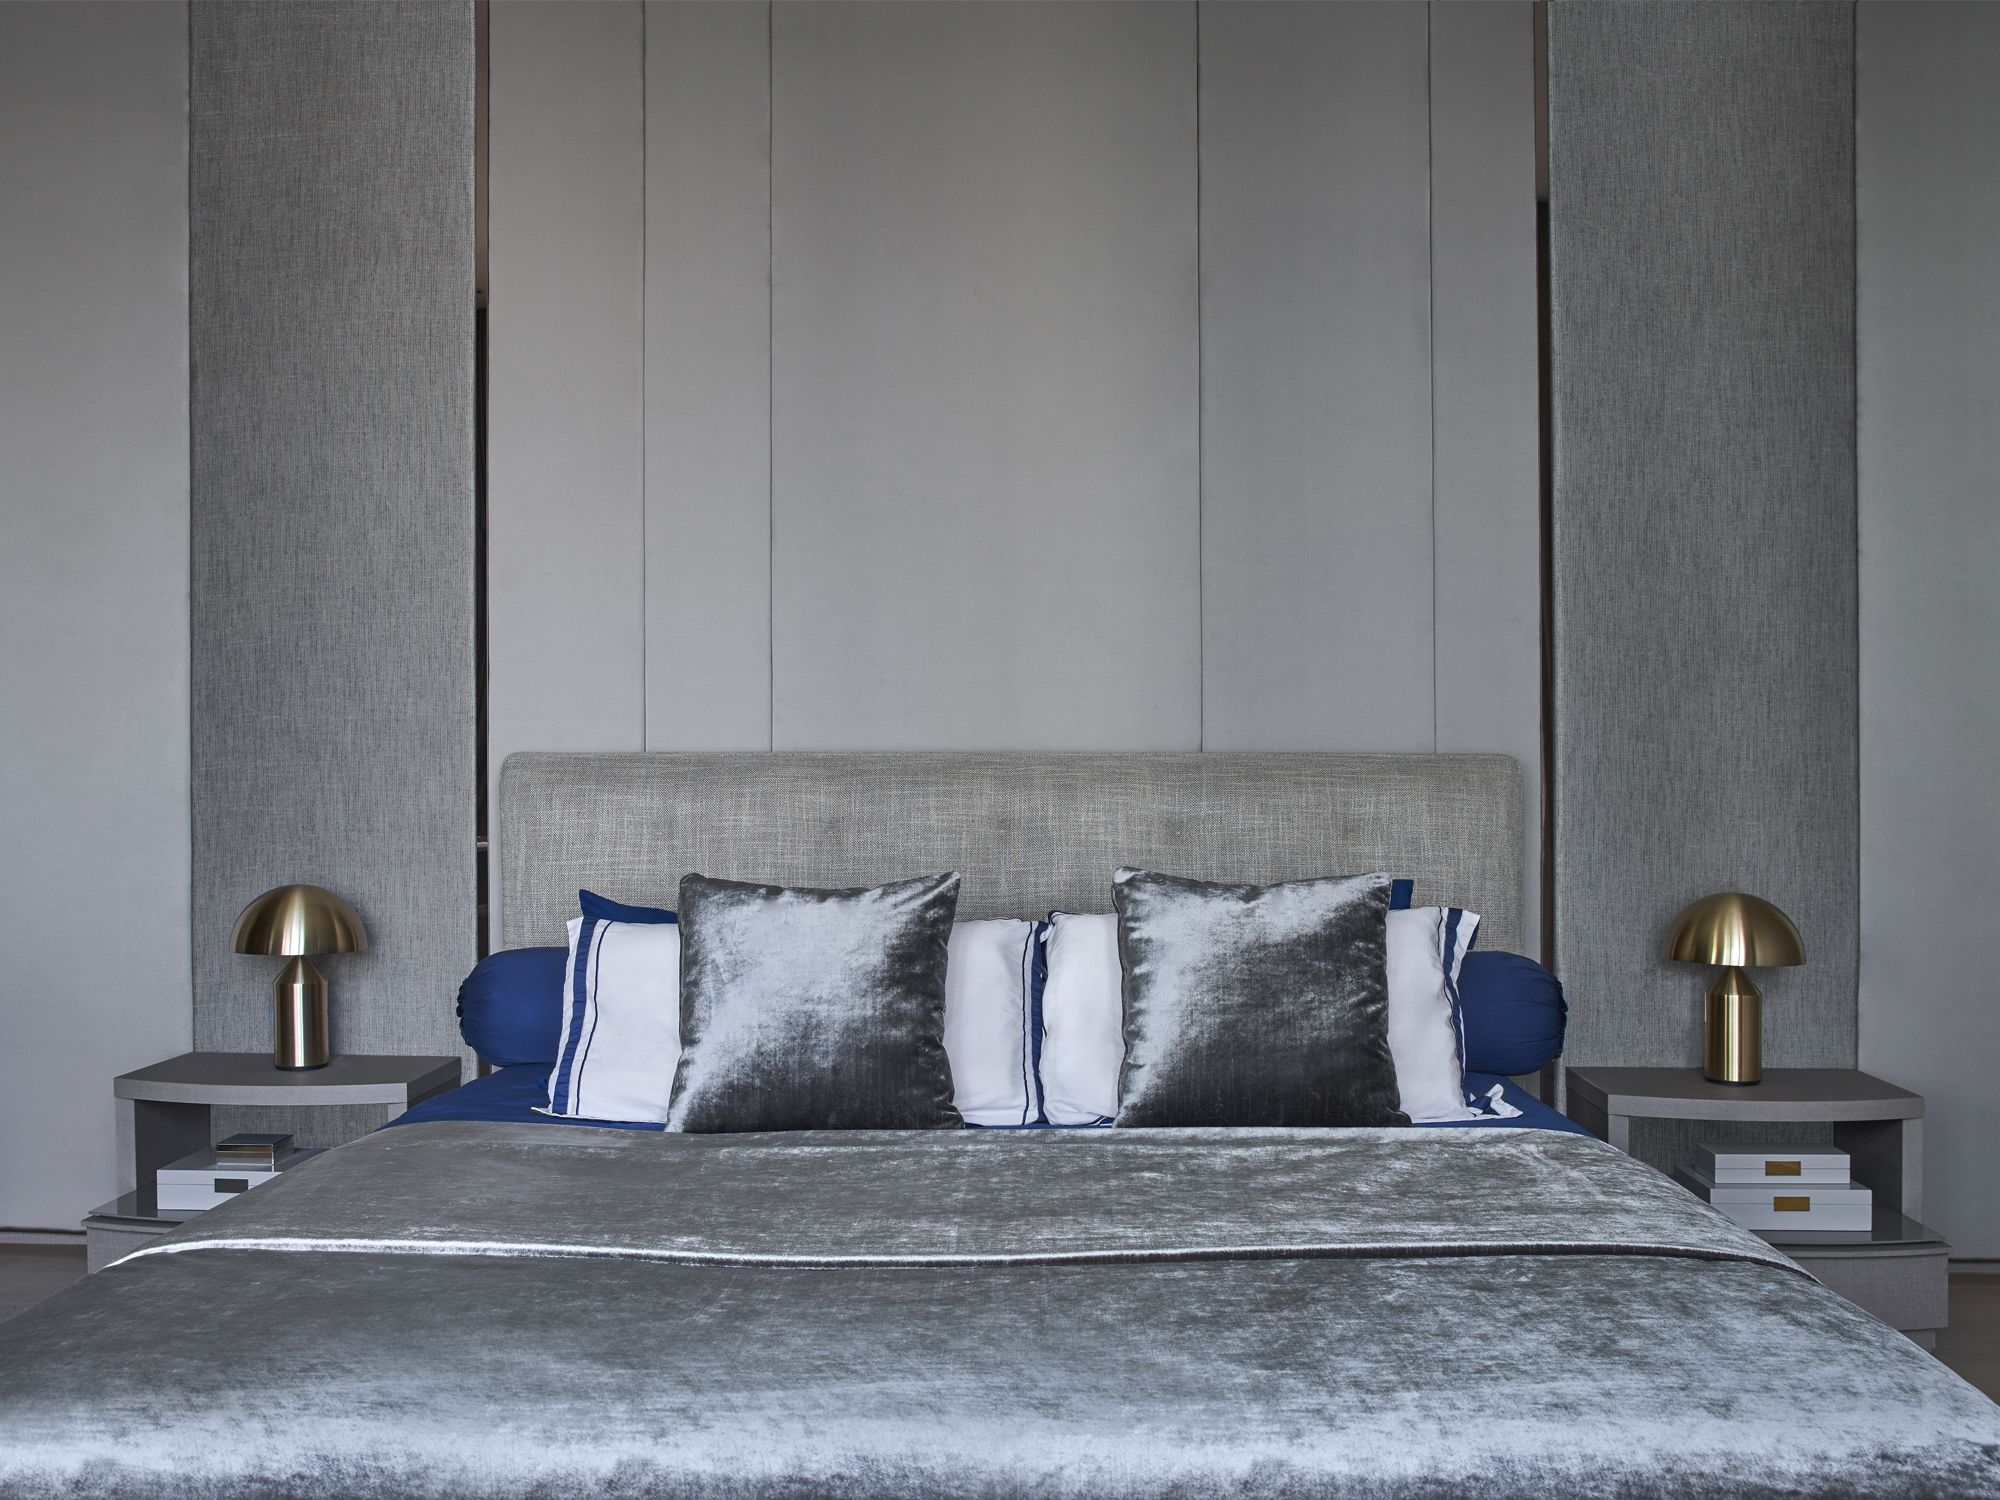 The bedroom features a Minotti bed that takes centre stage